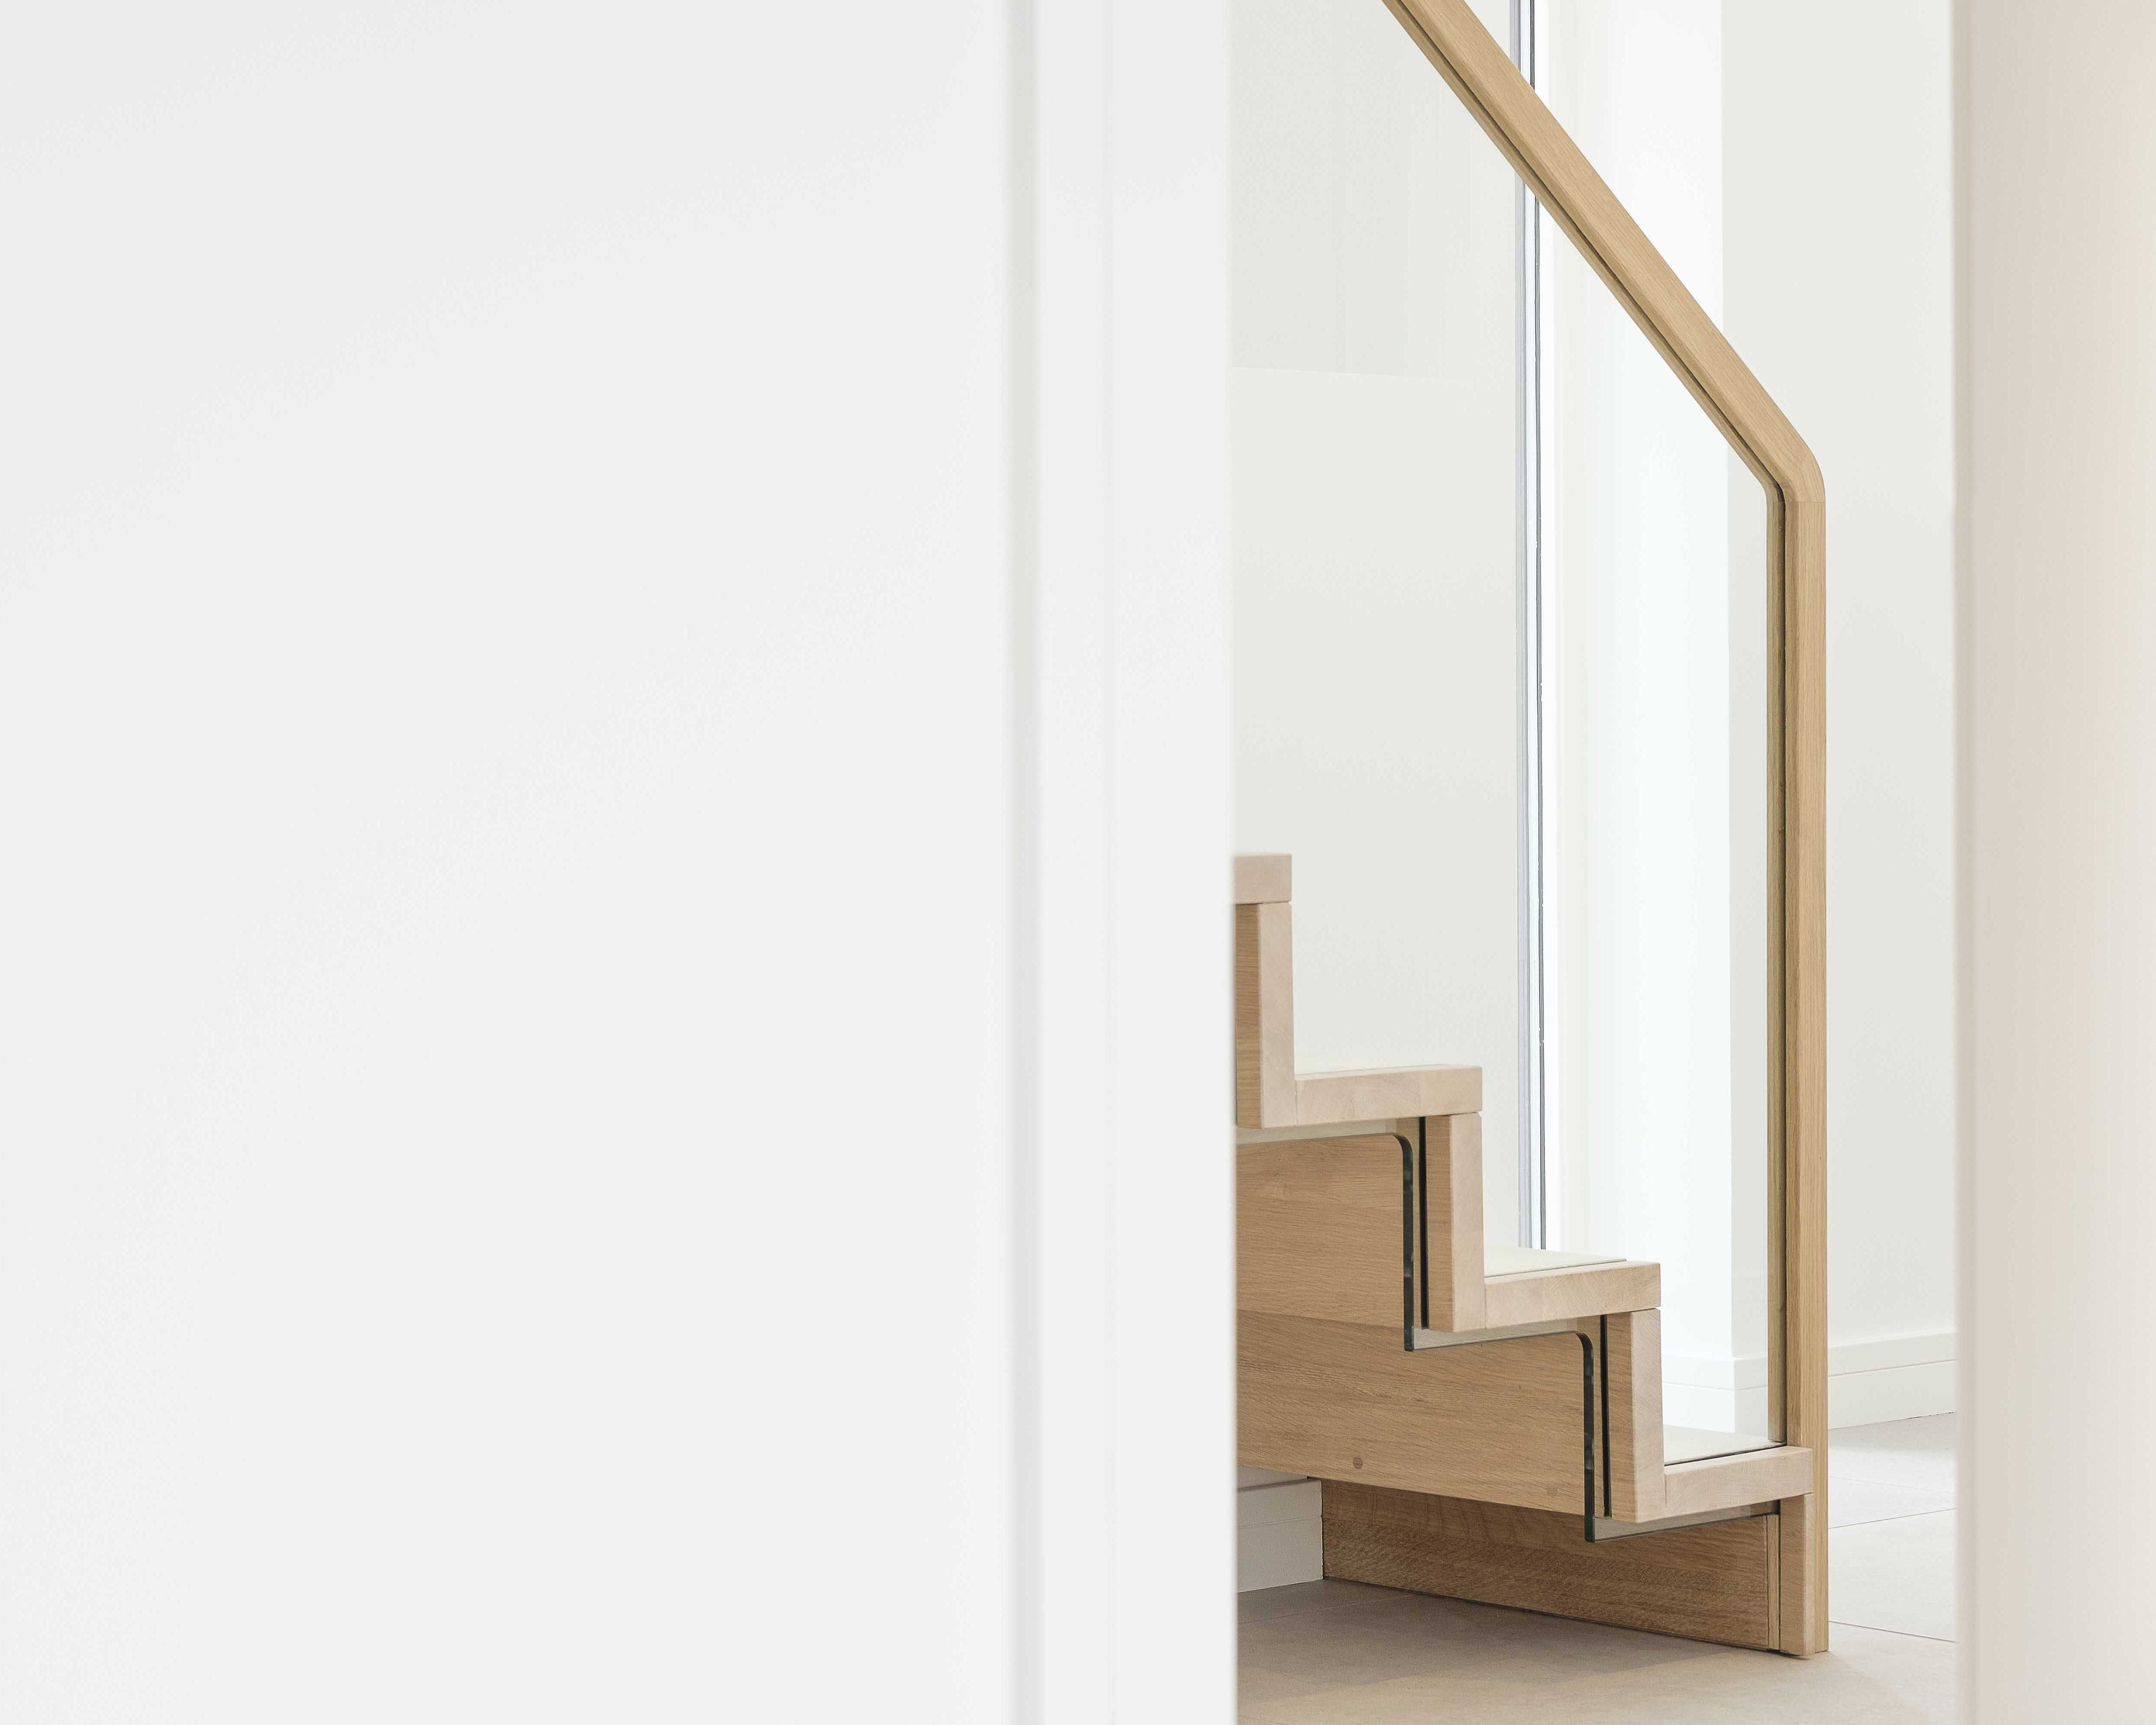 Side view of slim profile cantilevered oak staircase handrail and glass balustrade.